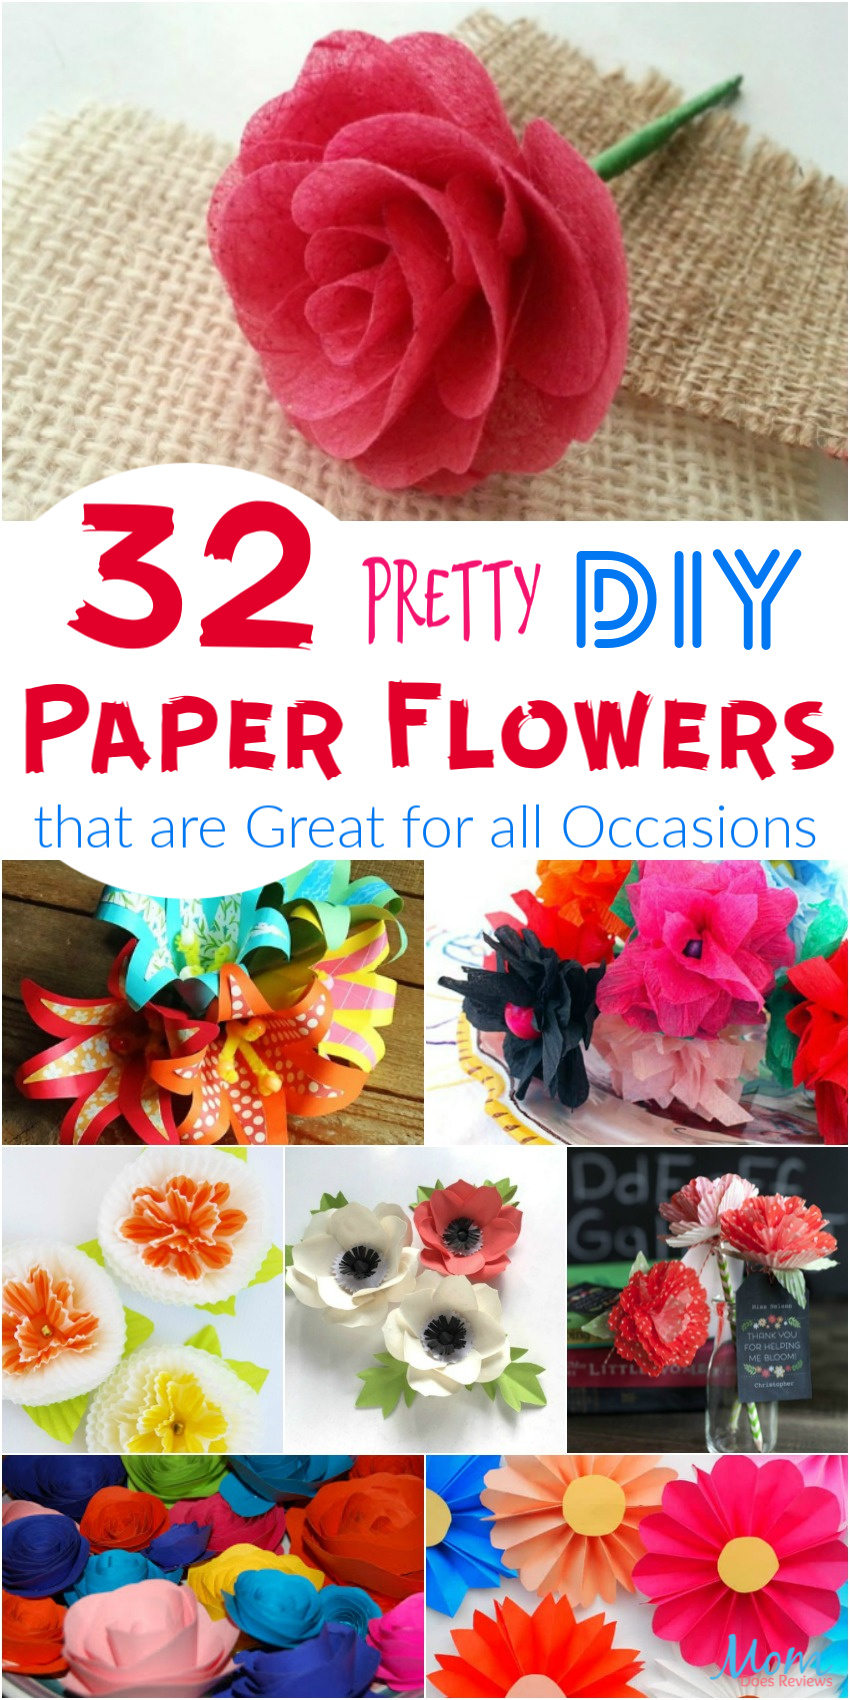 32 Pretty DIY Paper Flowers that are Great for all Occasions #crafts #diy #flowers #giftideas #funstuff